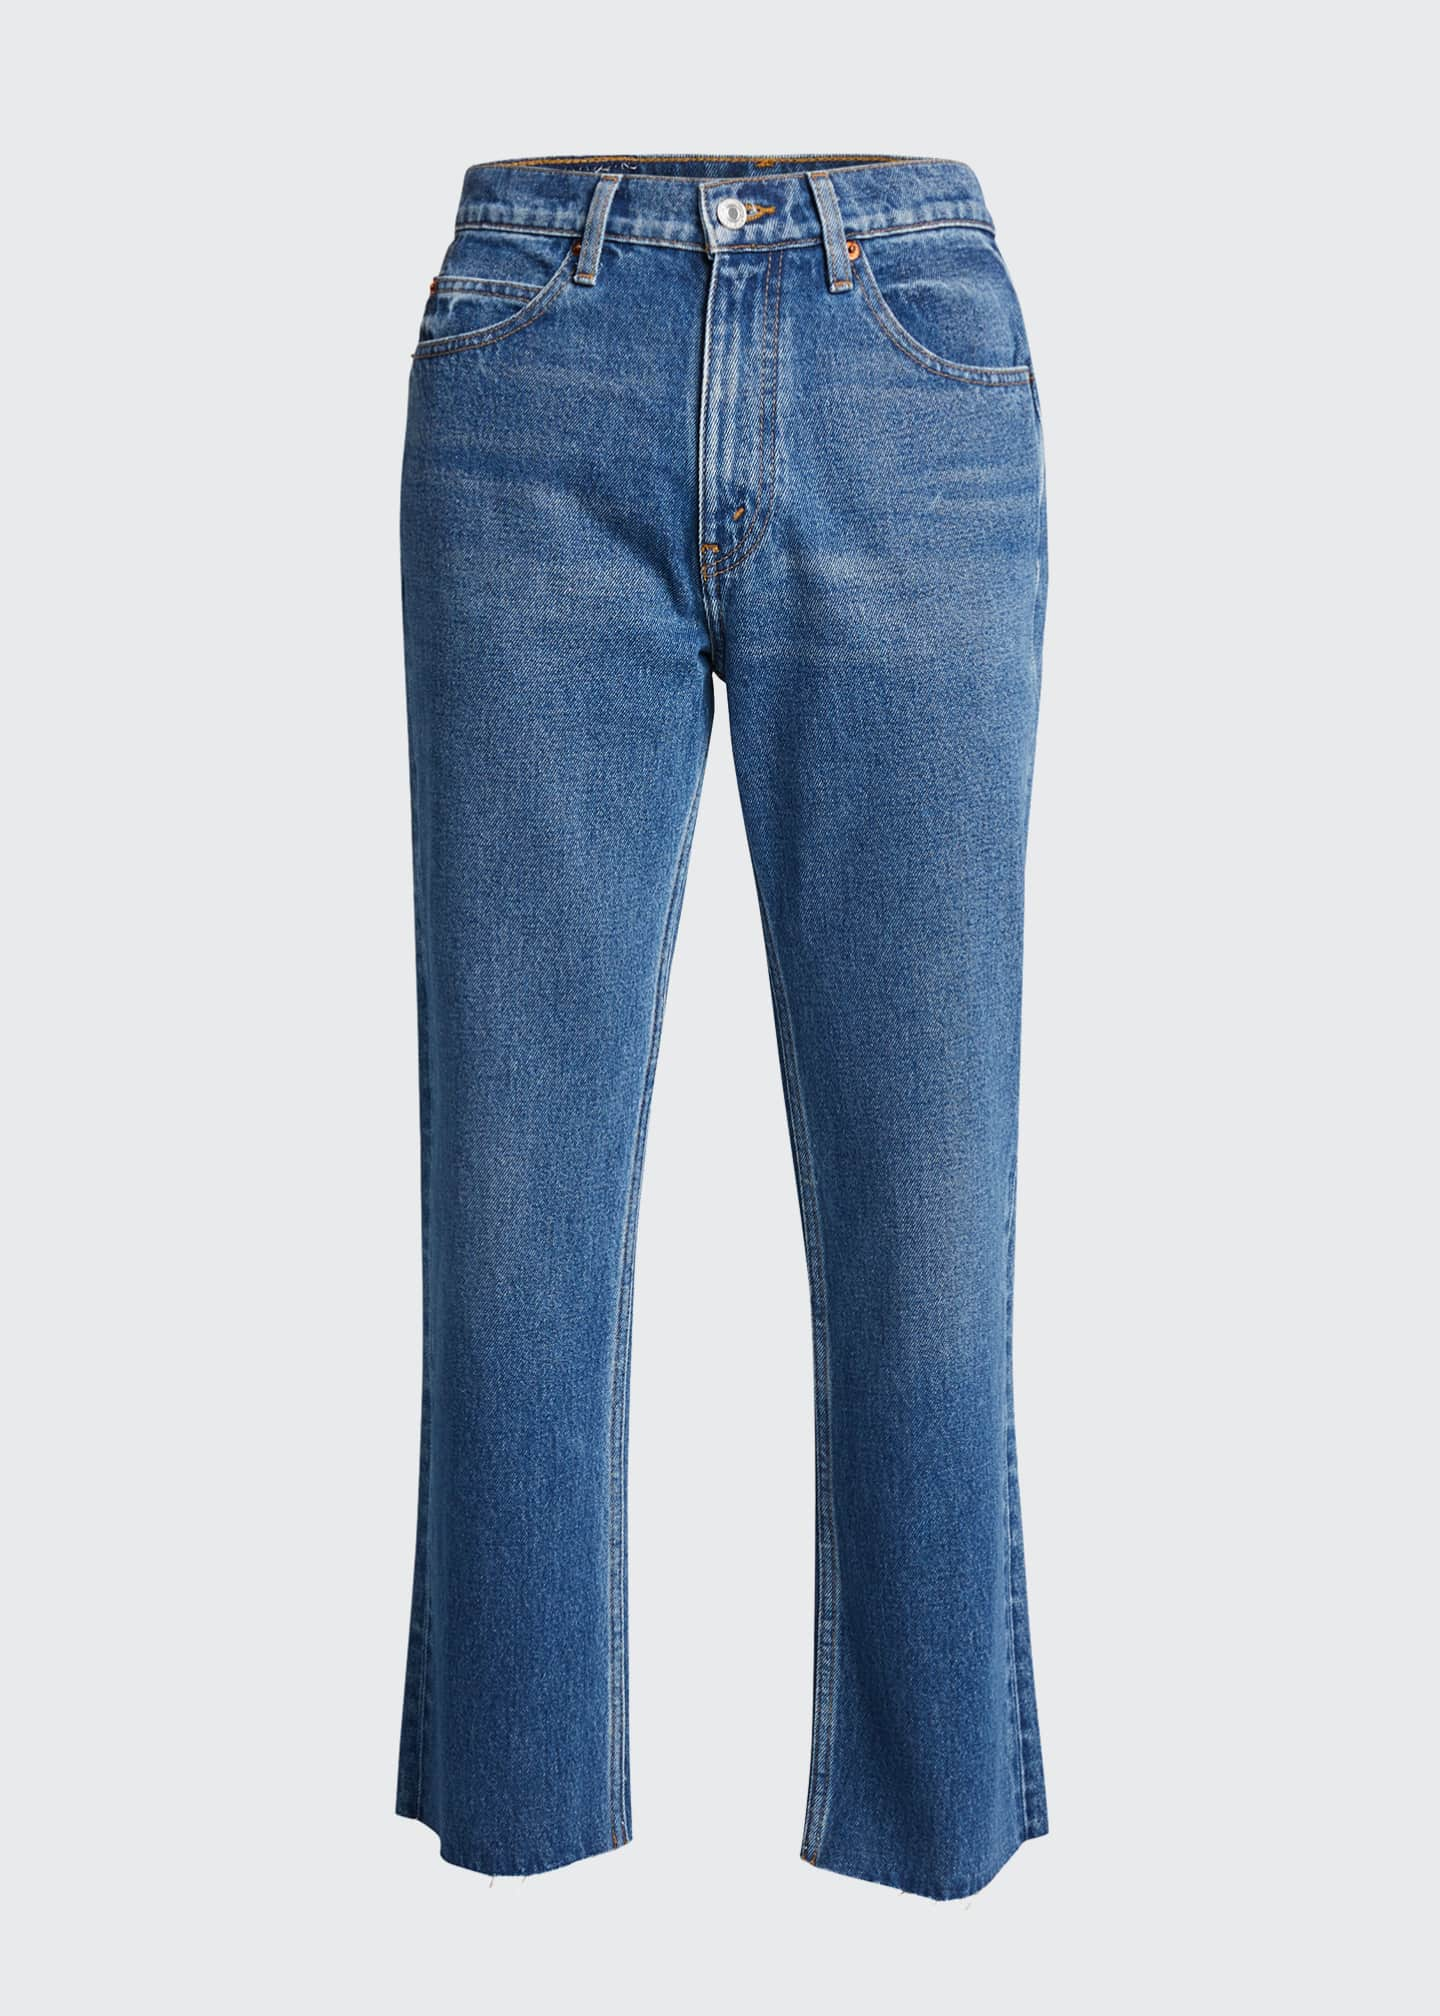 Image 5 of 5: 70s Crop Boot-Cut Jeans